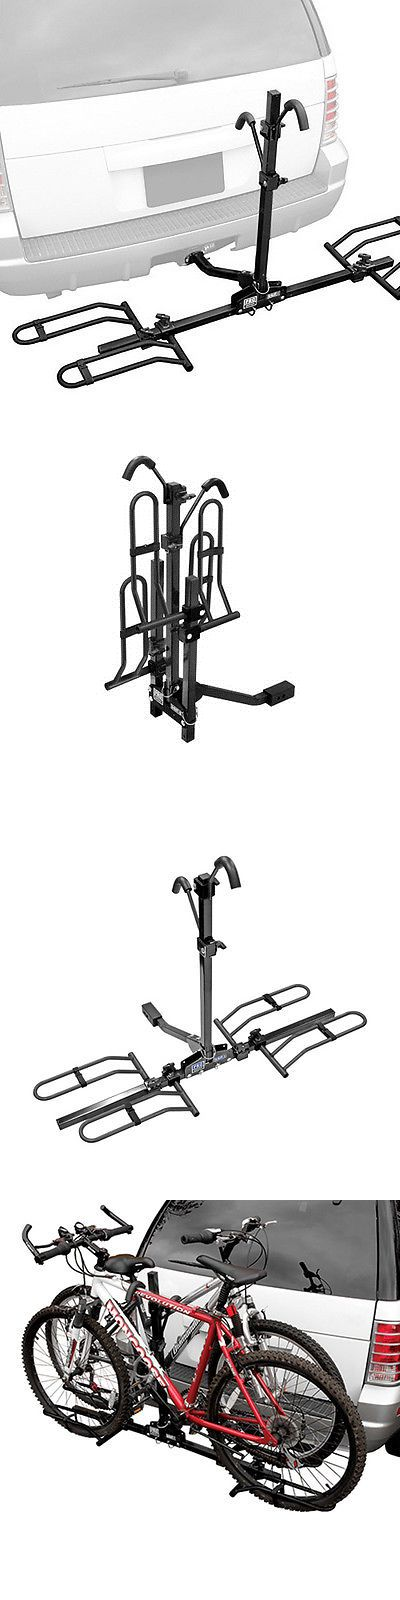 Car and Truck Racks 177849: Pro Series 63134 - Hitch Mount Bike Rack Brand New -> BUY IT NOW ONLY: $119.79 on eBay!